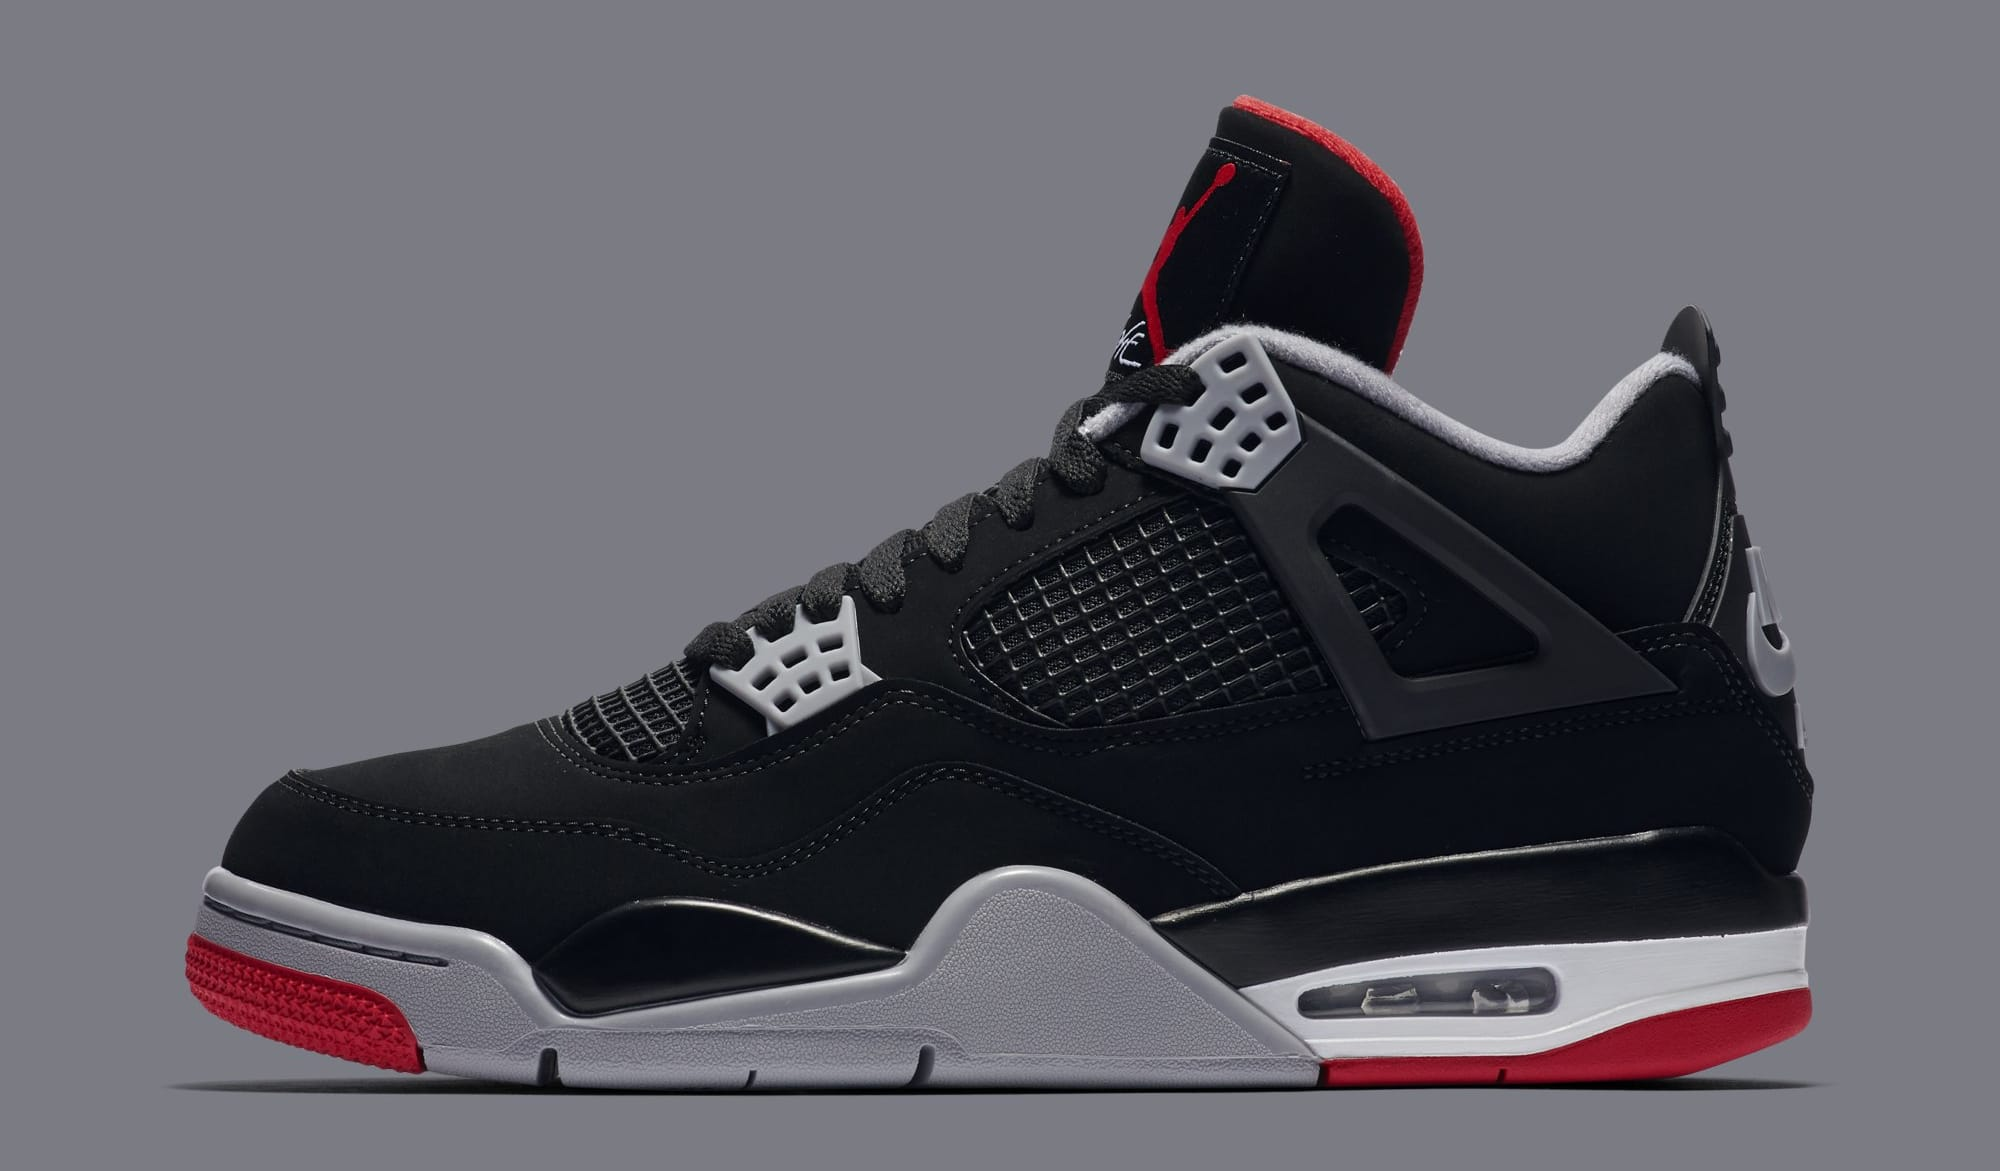 low priced d6eaf 6f40c Air Jordan 4  Bred  308497-060 (Lateral)